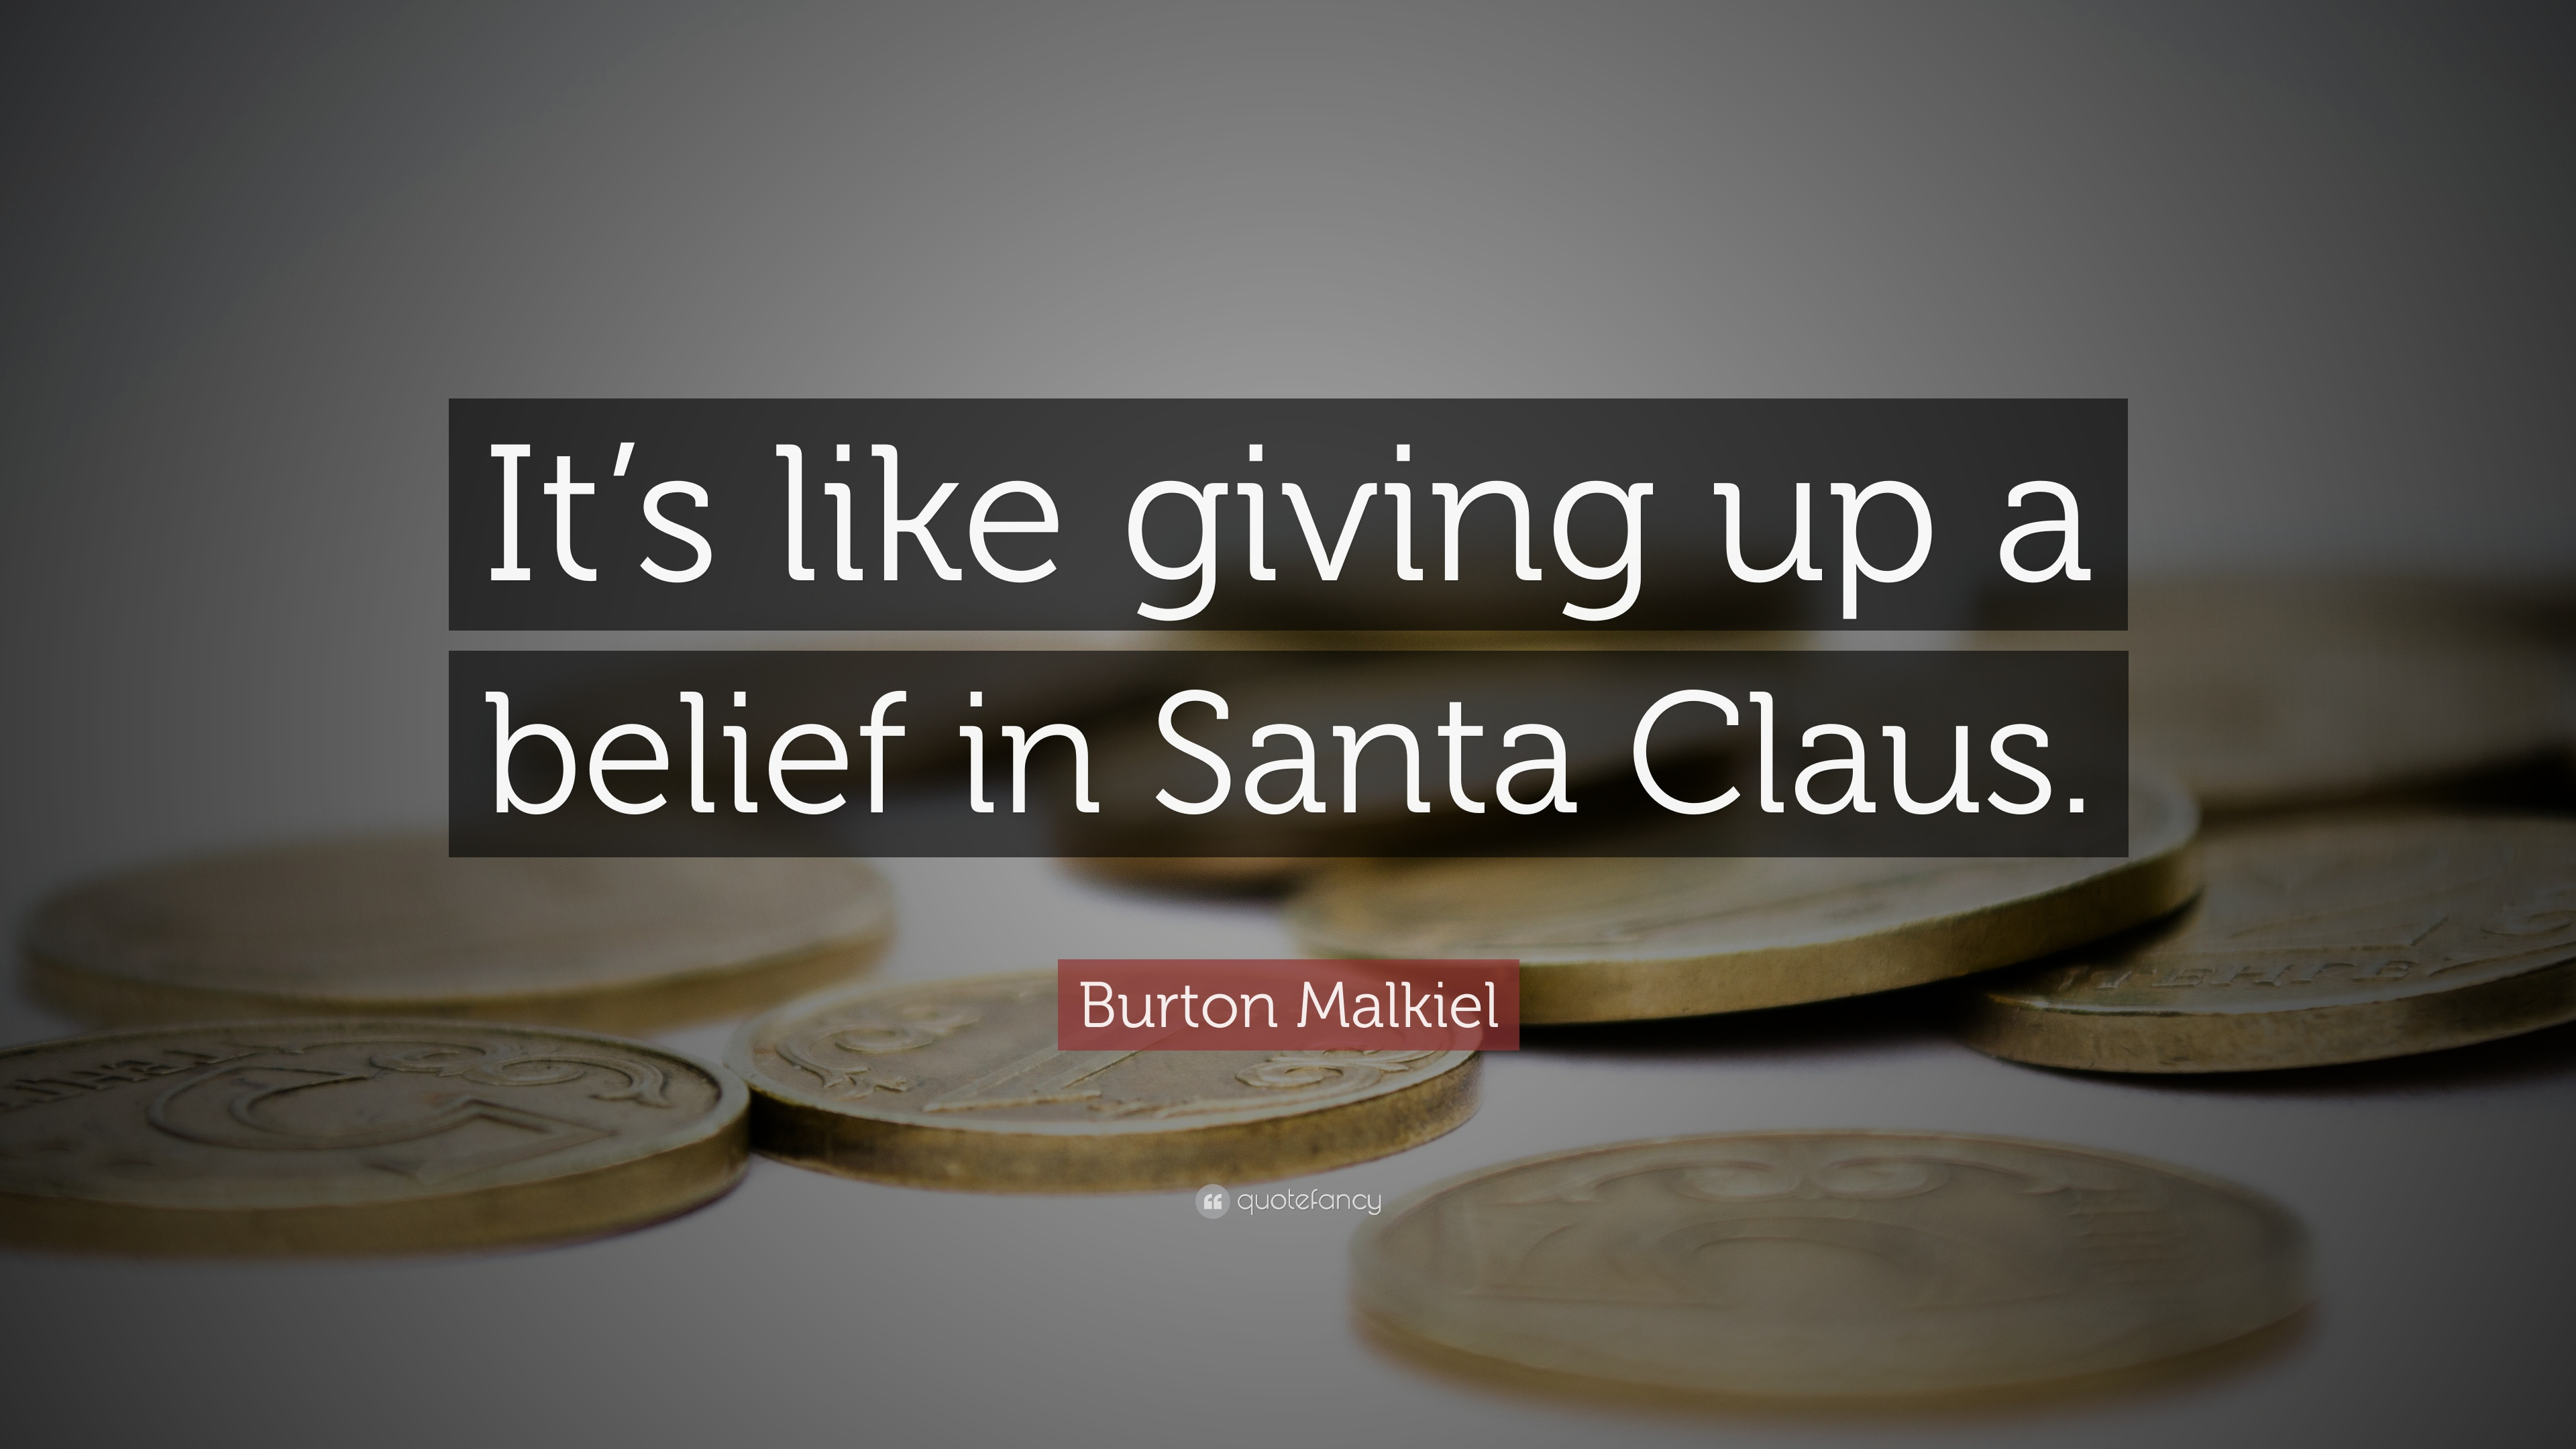 Burton Malkiel Quote: U201cItu0027s Like Giving Up A Belief In Santa Claus.u201d